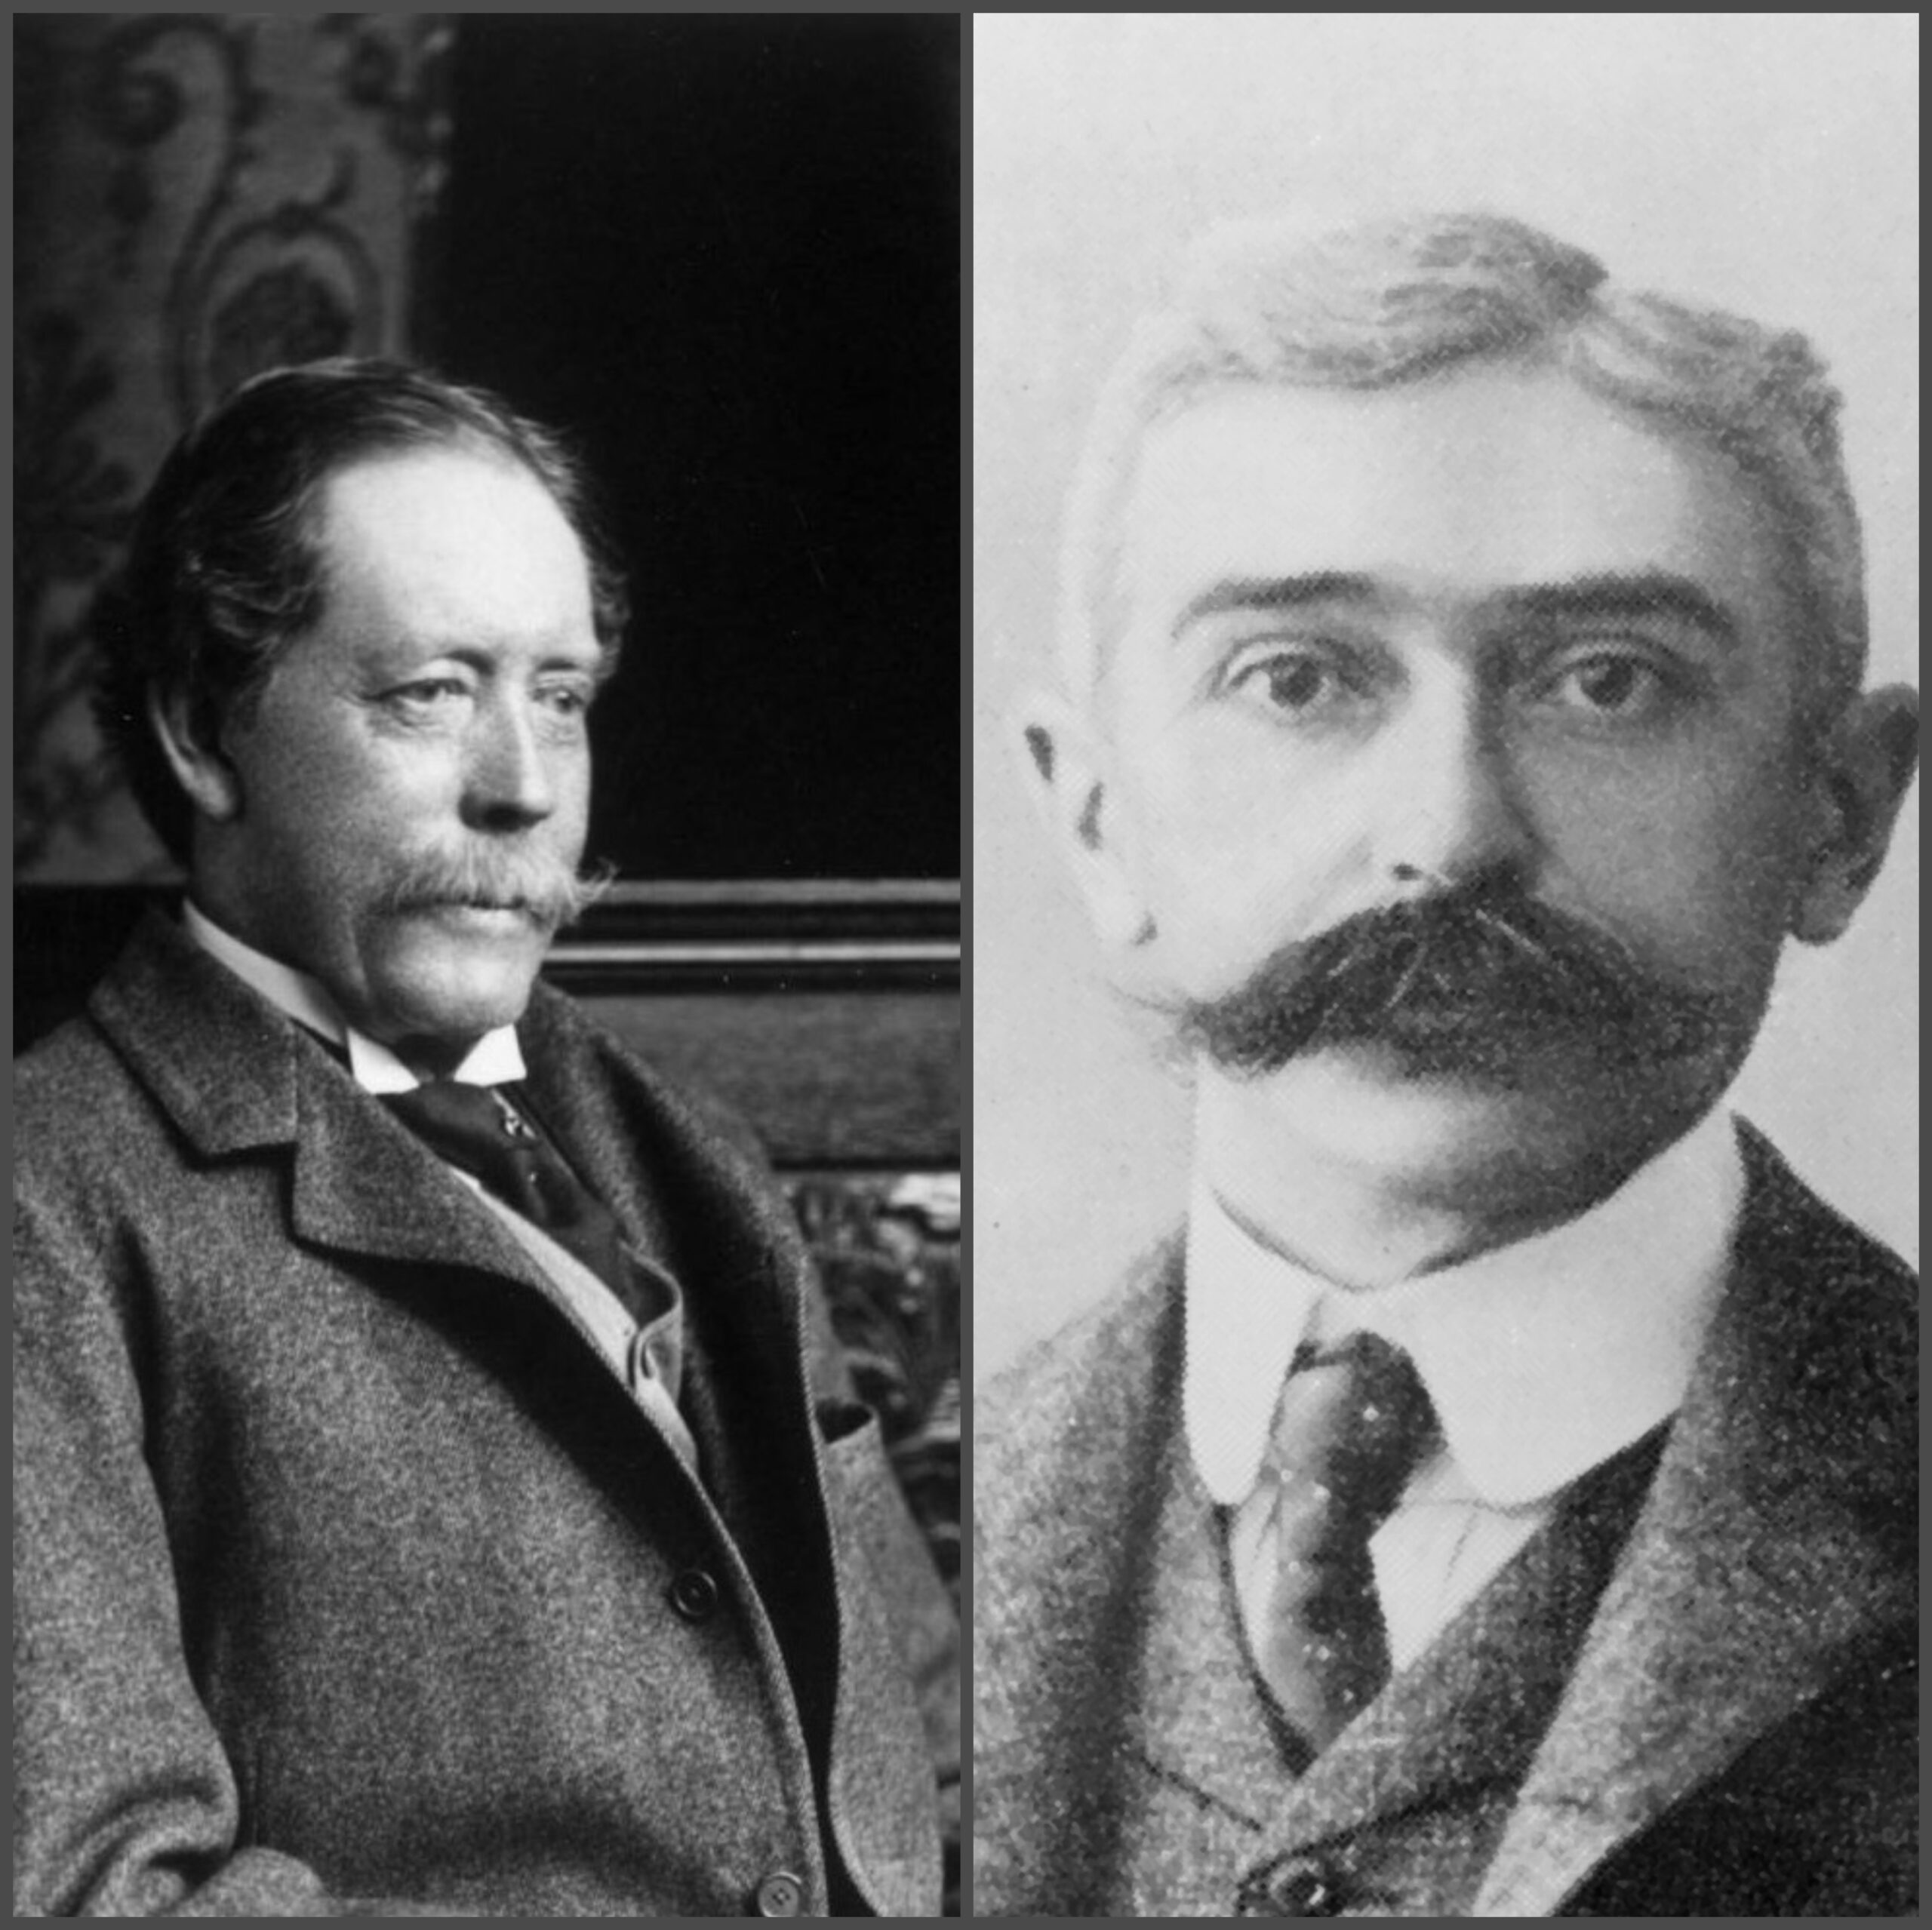 William Jackson Palmer (left) founded Colorado Springs.  Pierre de Coubertin (right) is the founder of the International Olympic Committee.